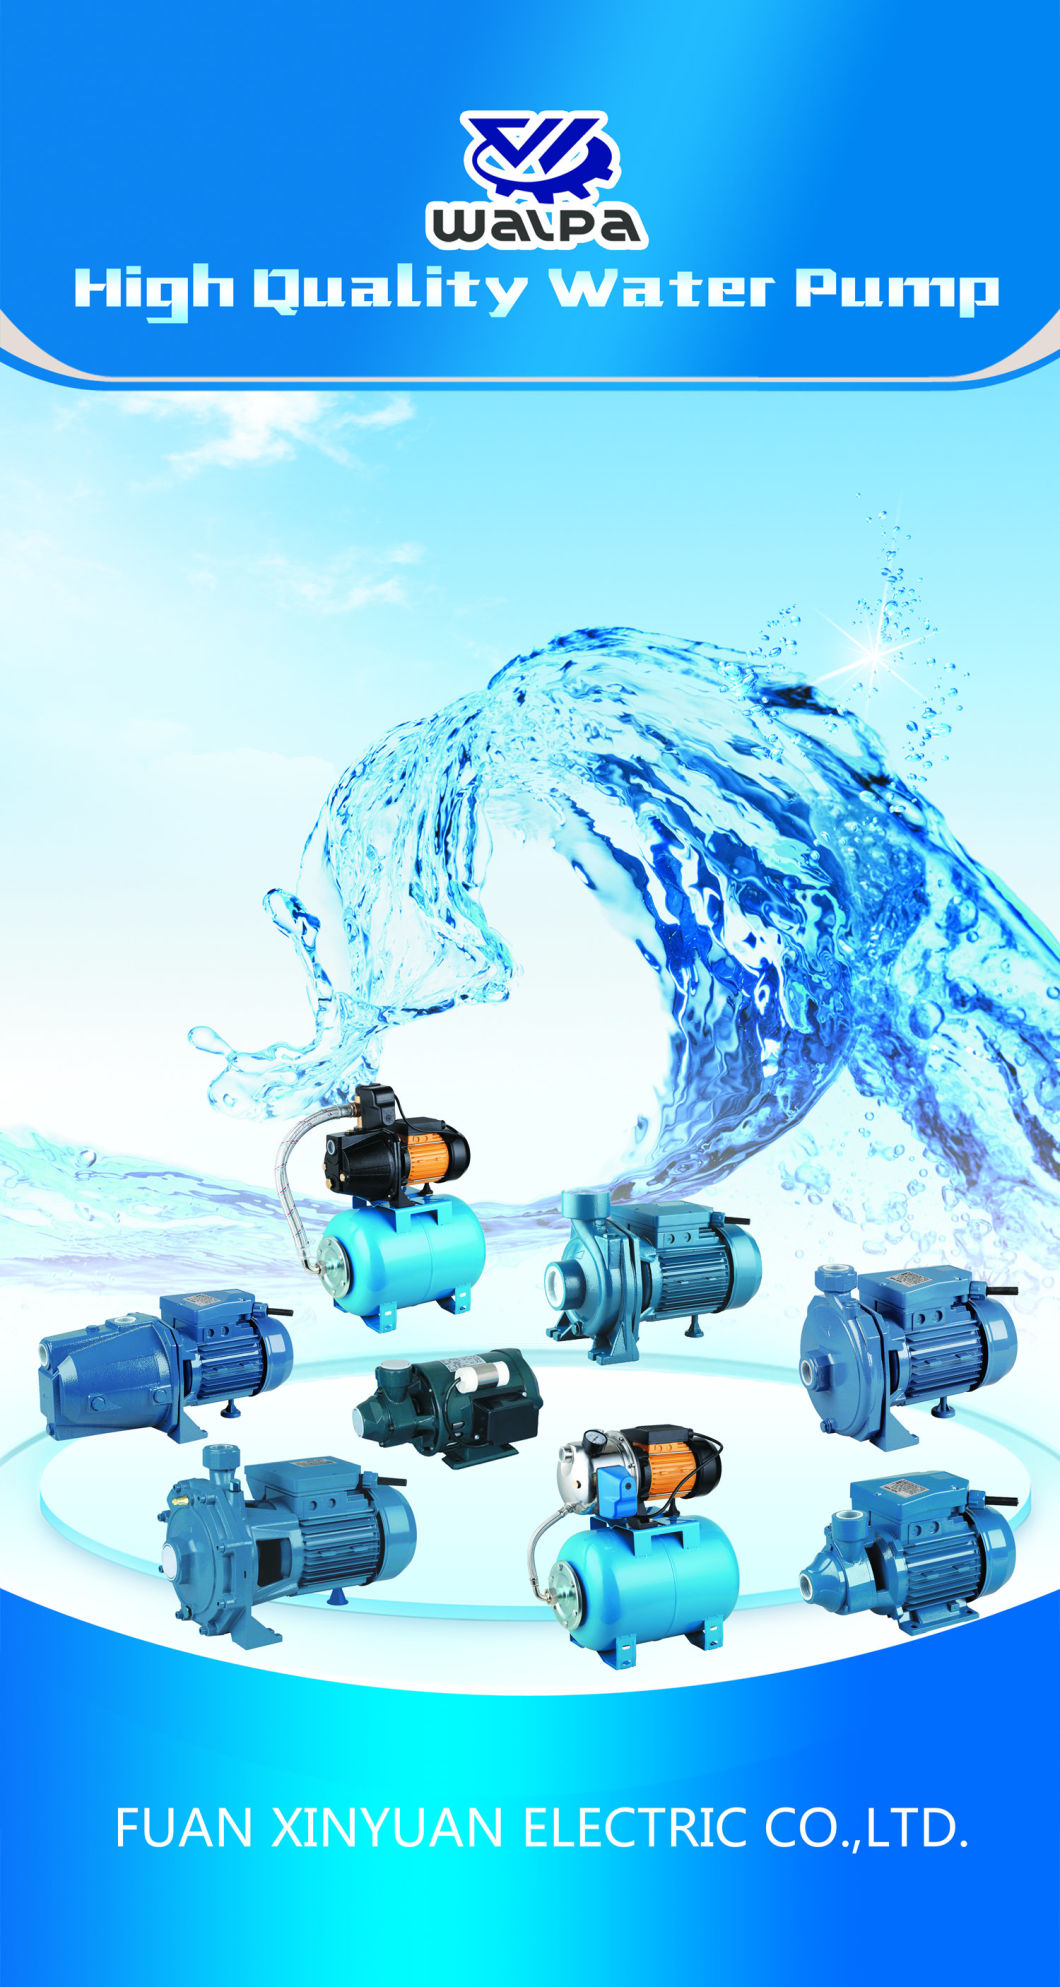 Auto Jet Self-Priming Pump with Stainless Steel Pump Body